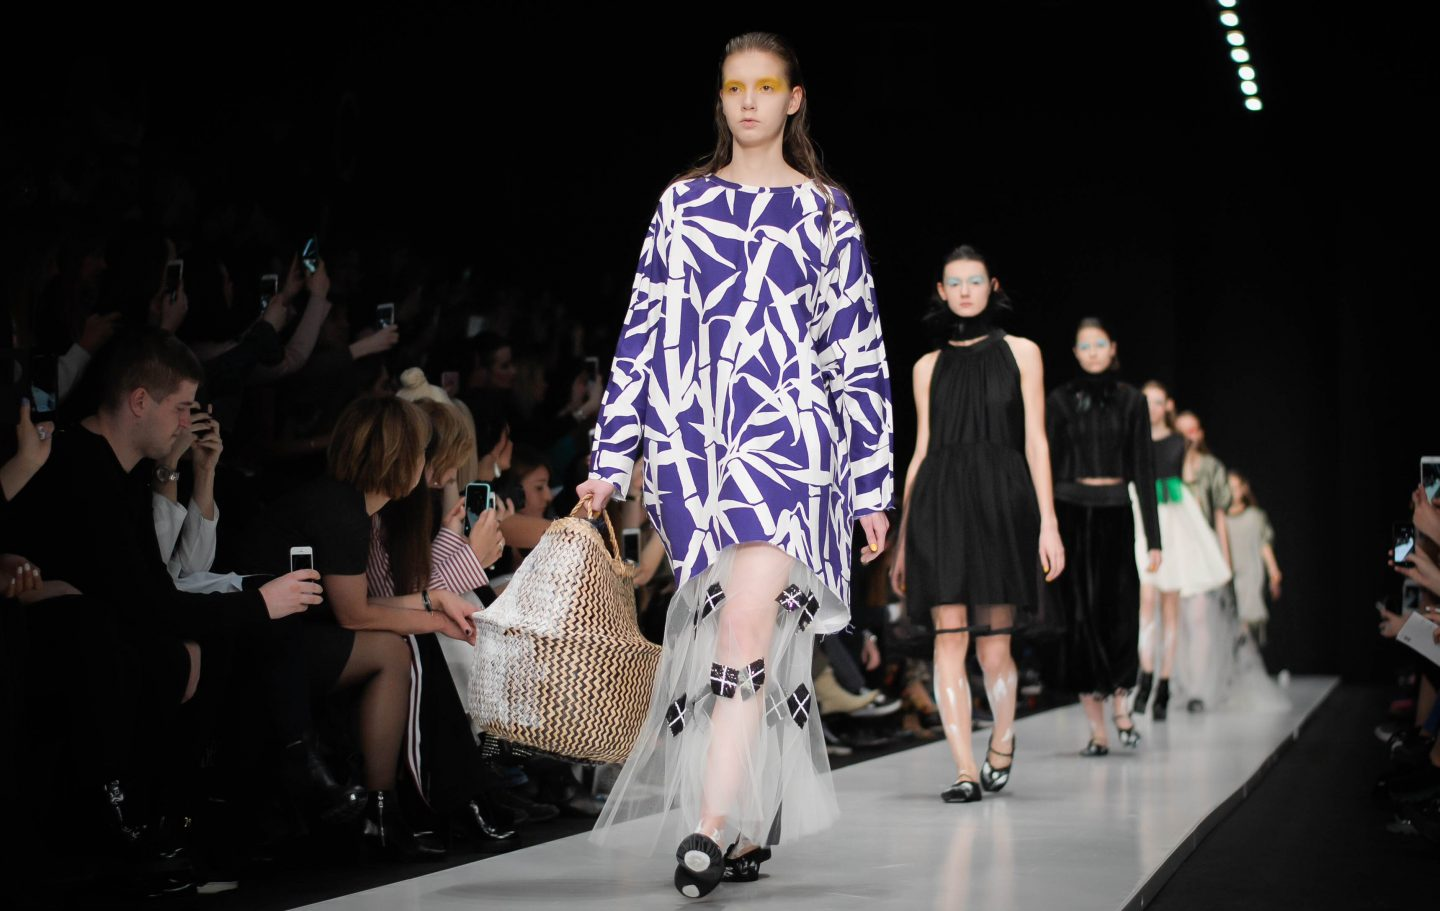 MBFW Russia: 5th day